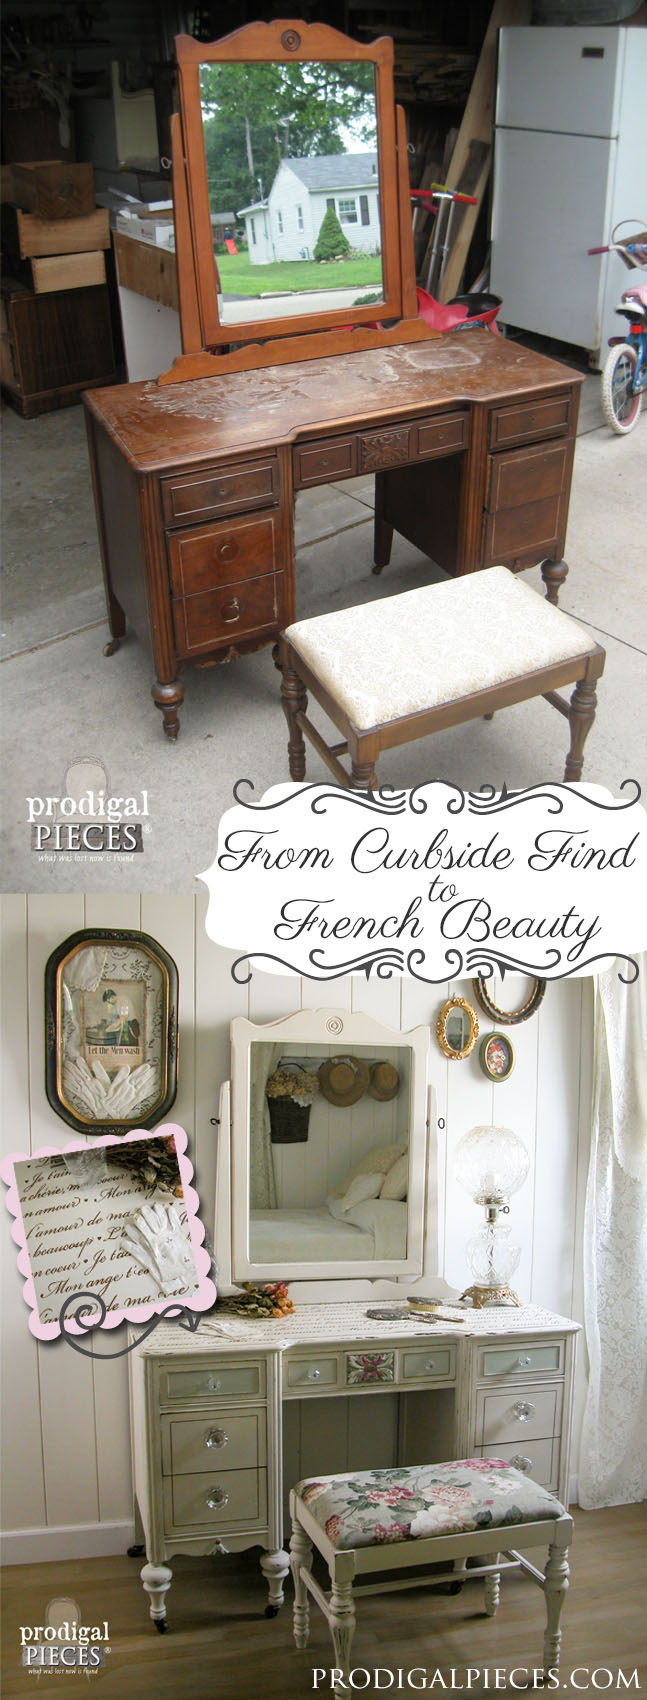 Curbside Vanity is Renewed with Fresh Look and French Script Stenci by Prodigal Pieces | www.prodigalpieces.com